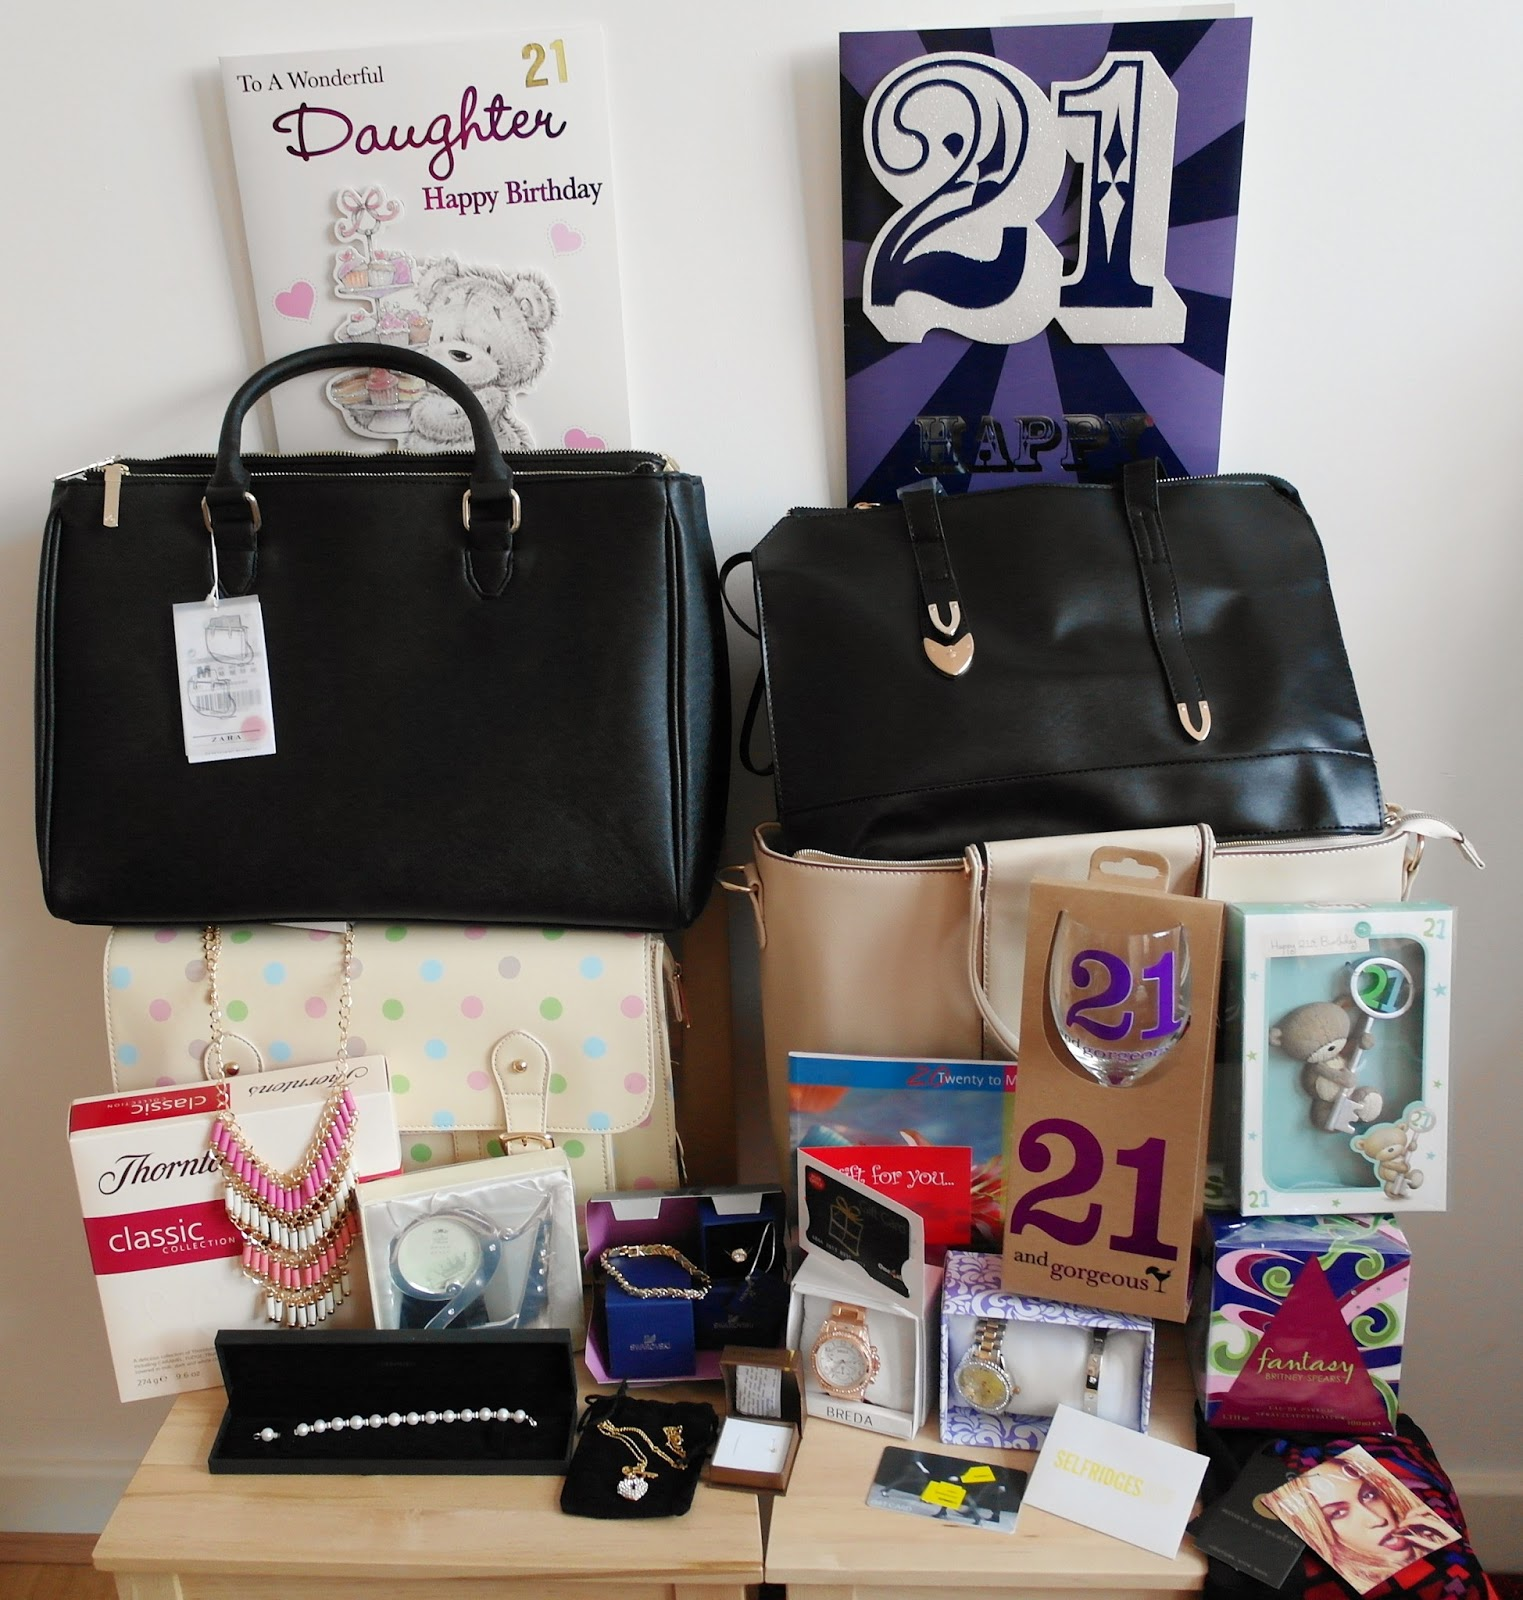 La Belle Aventure: My 21st Birthday Haul